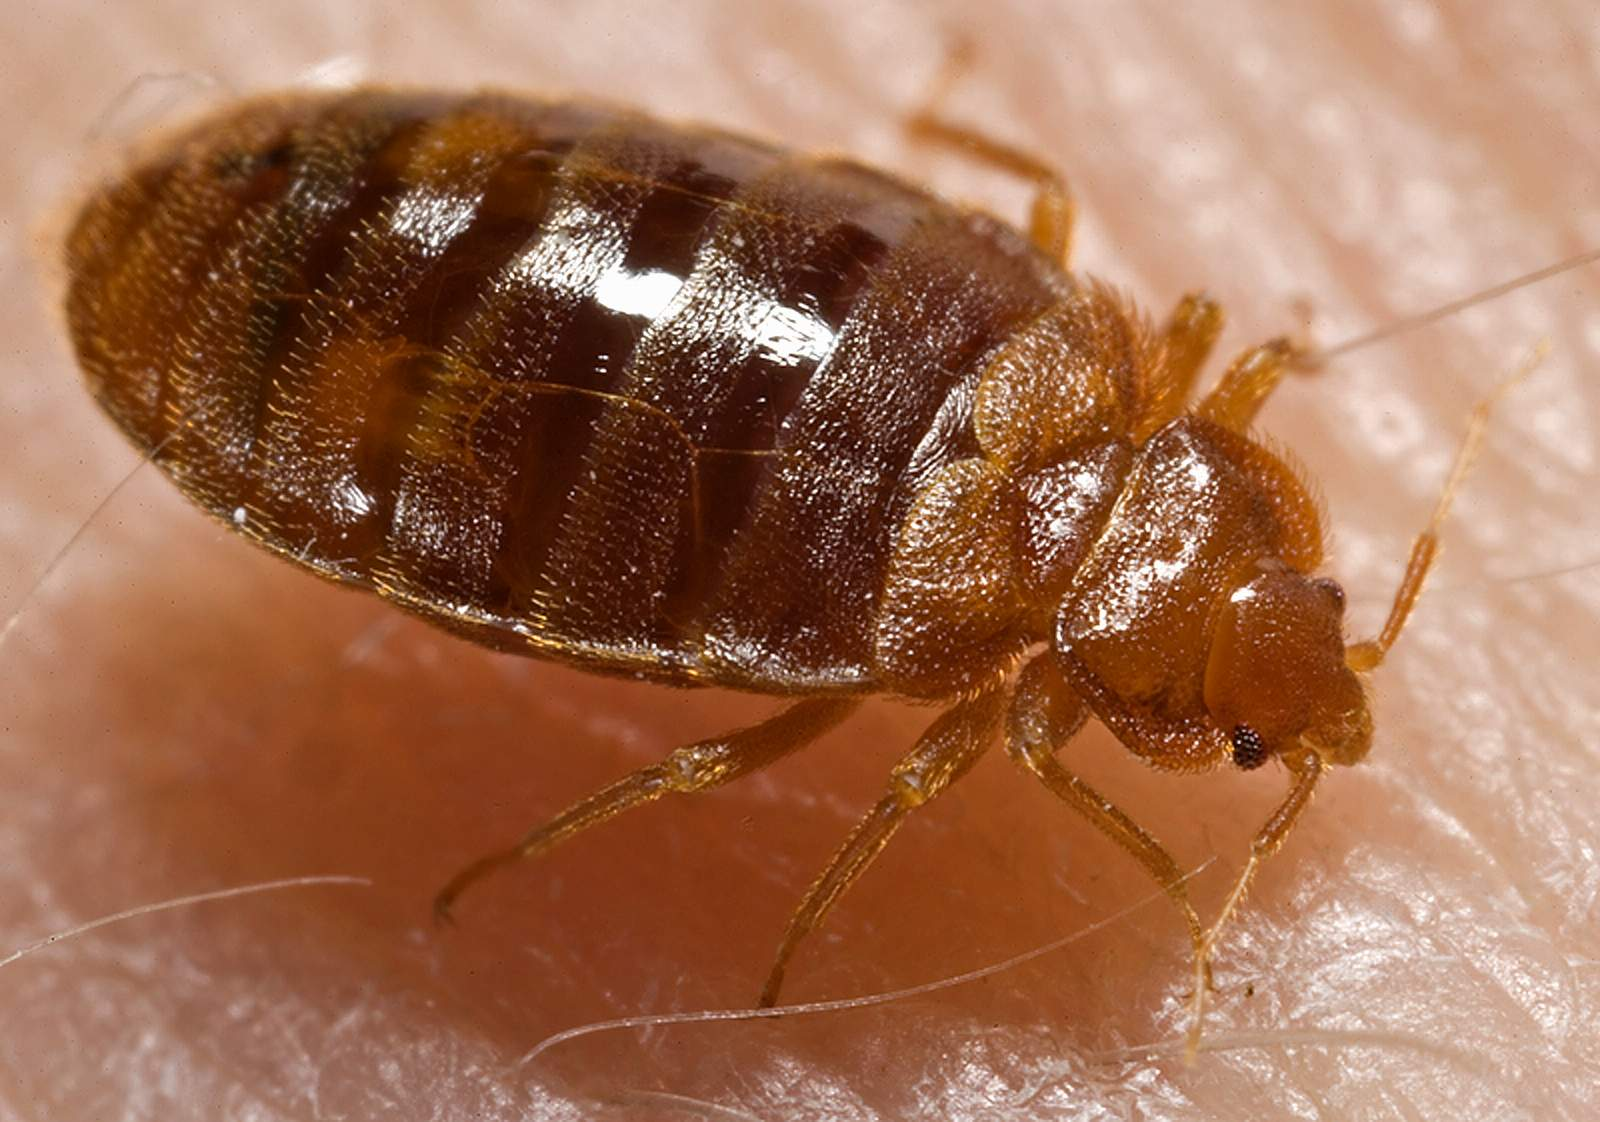 How to deal with bedbugs 65